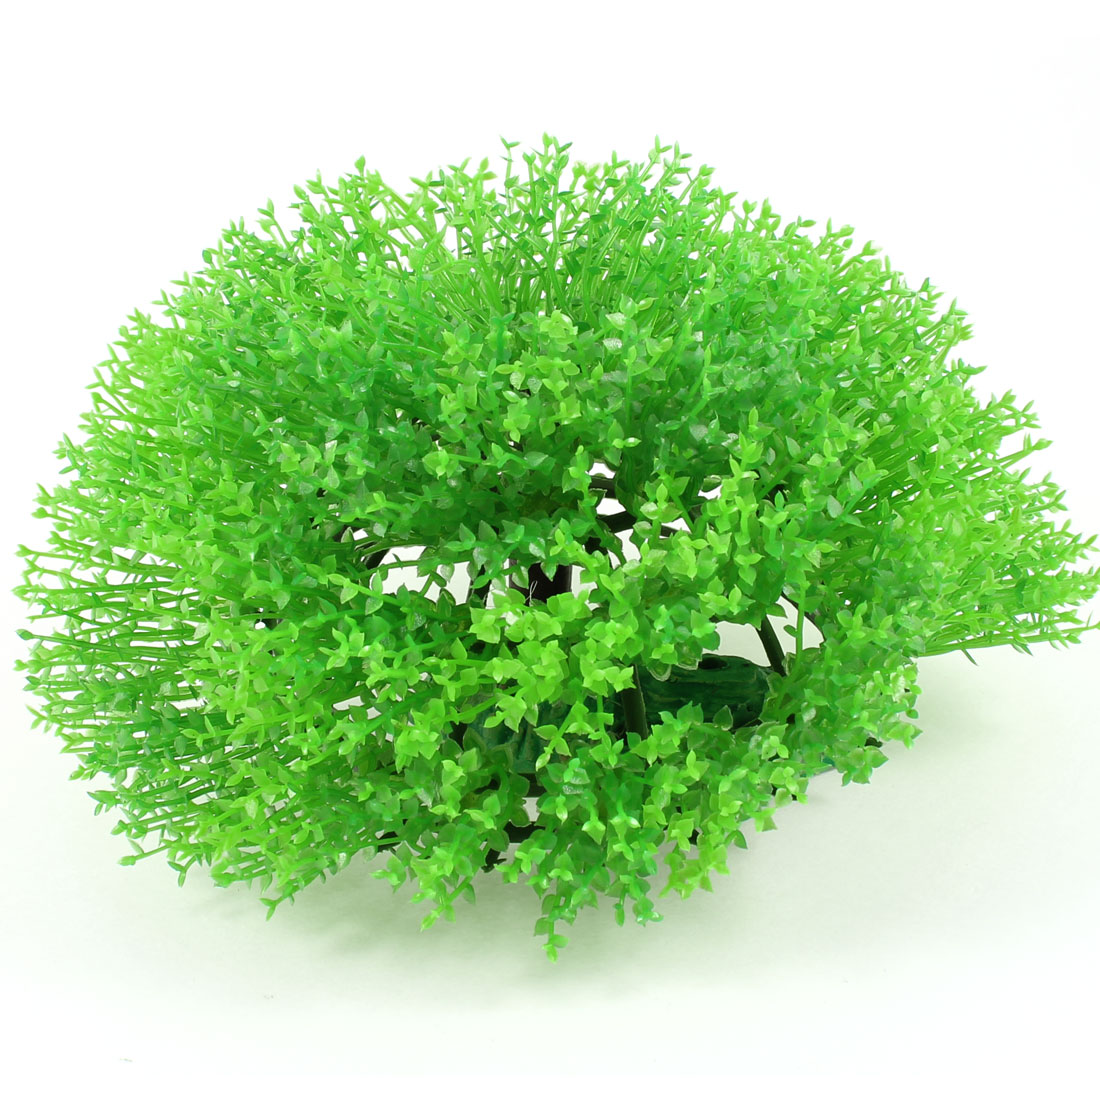 Fish Tank Aquarium Landscaping Manmade Plastic Underwater Tree Plant Ornament Green